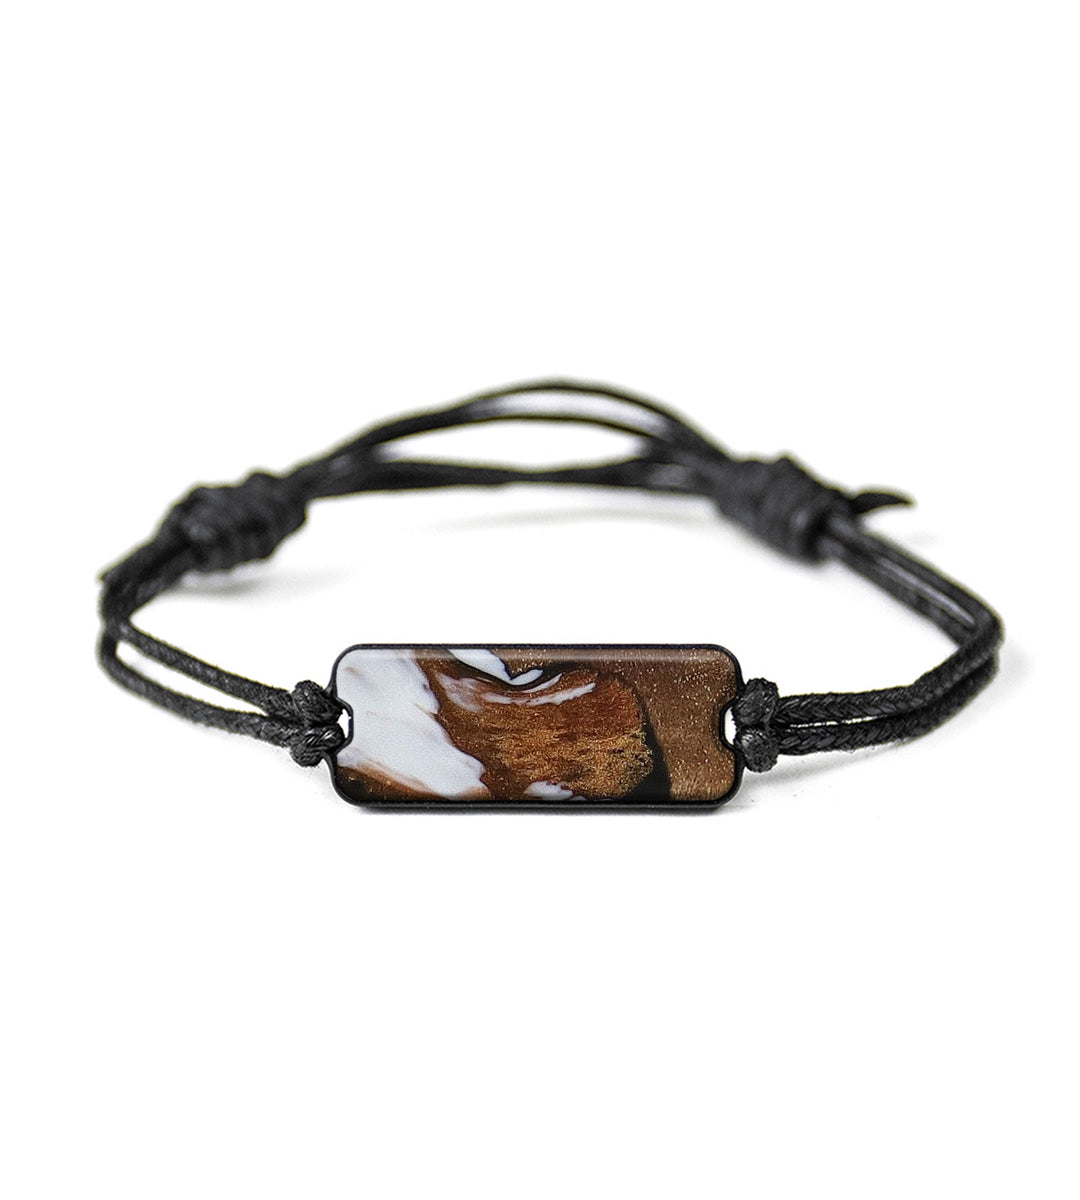 Classic Wood+Resin Bracelet - Kayley (Black & White, 393700)